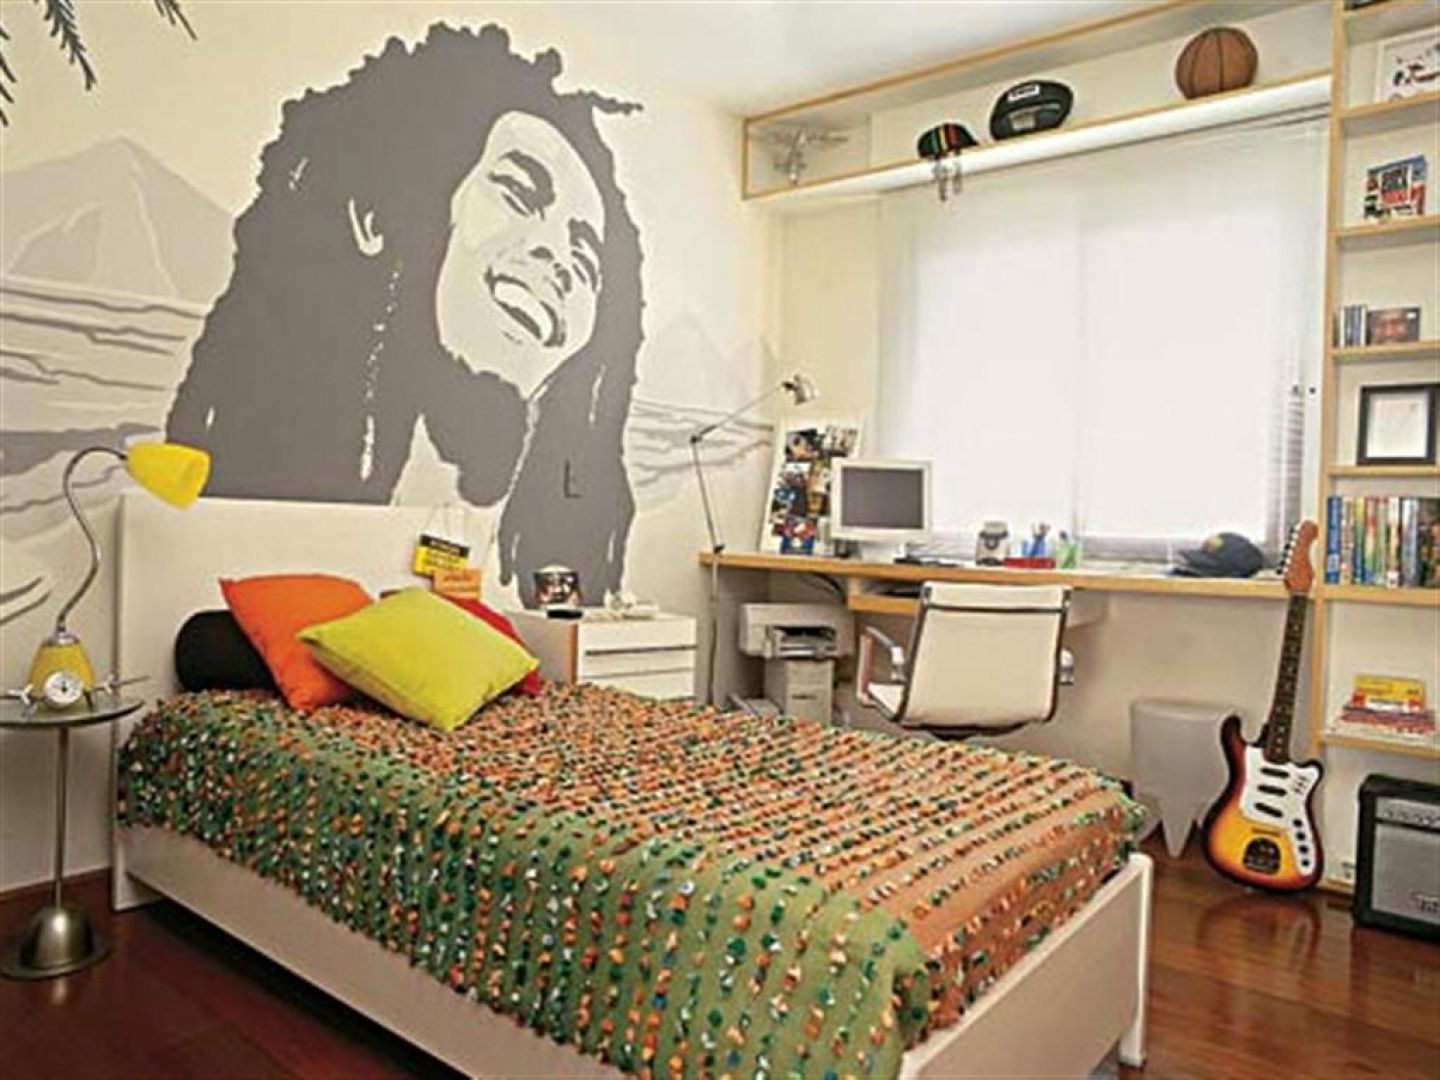 Cool bedroom designs for guys - 18 Cool And Trendy Teen Boys Bedroom Designs Cool Bob Marley Wall Decal Teen Boys